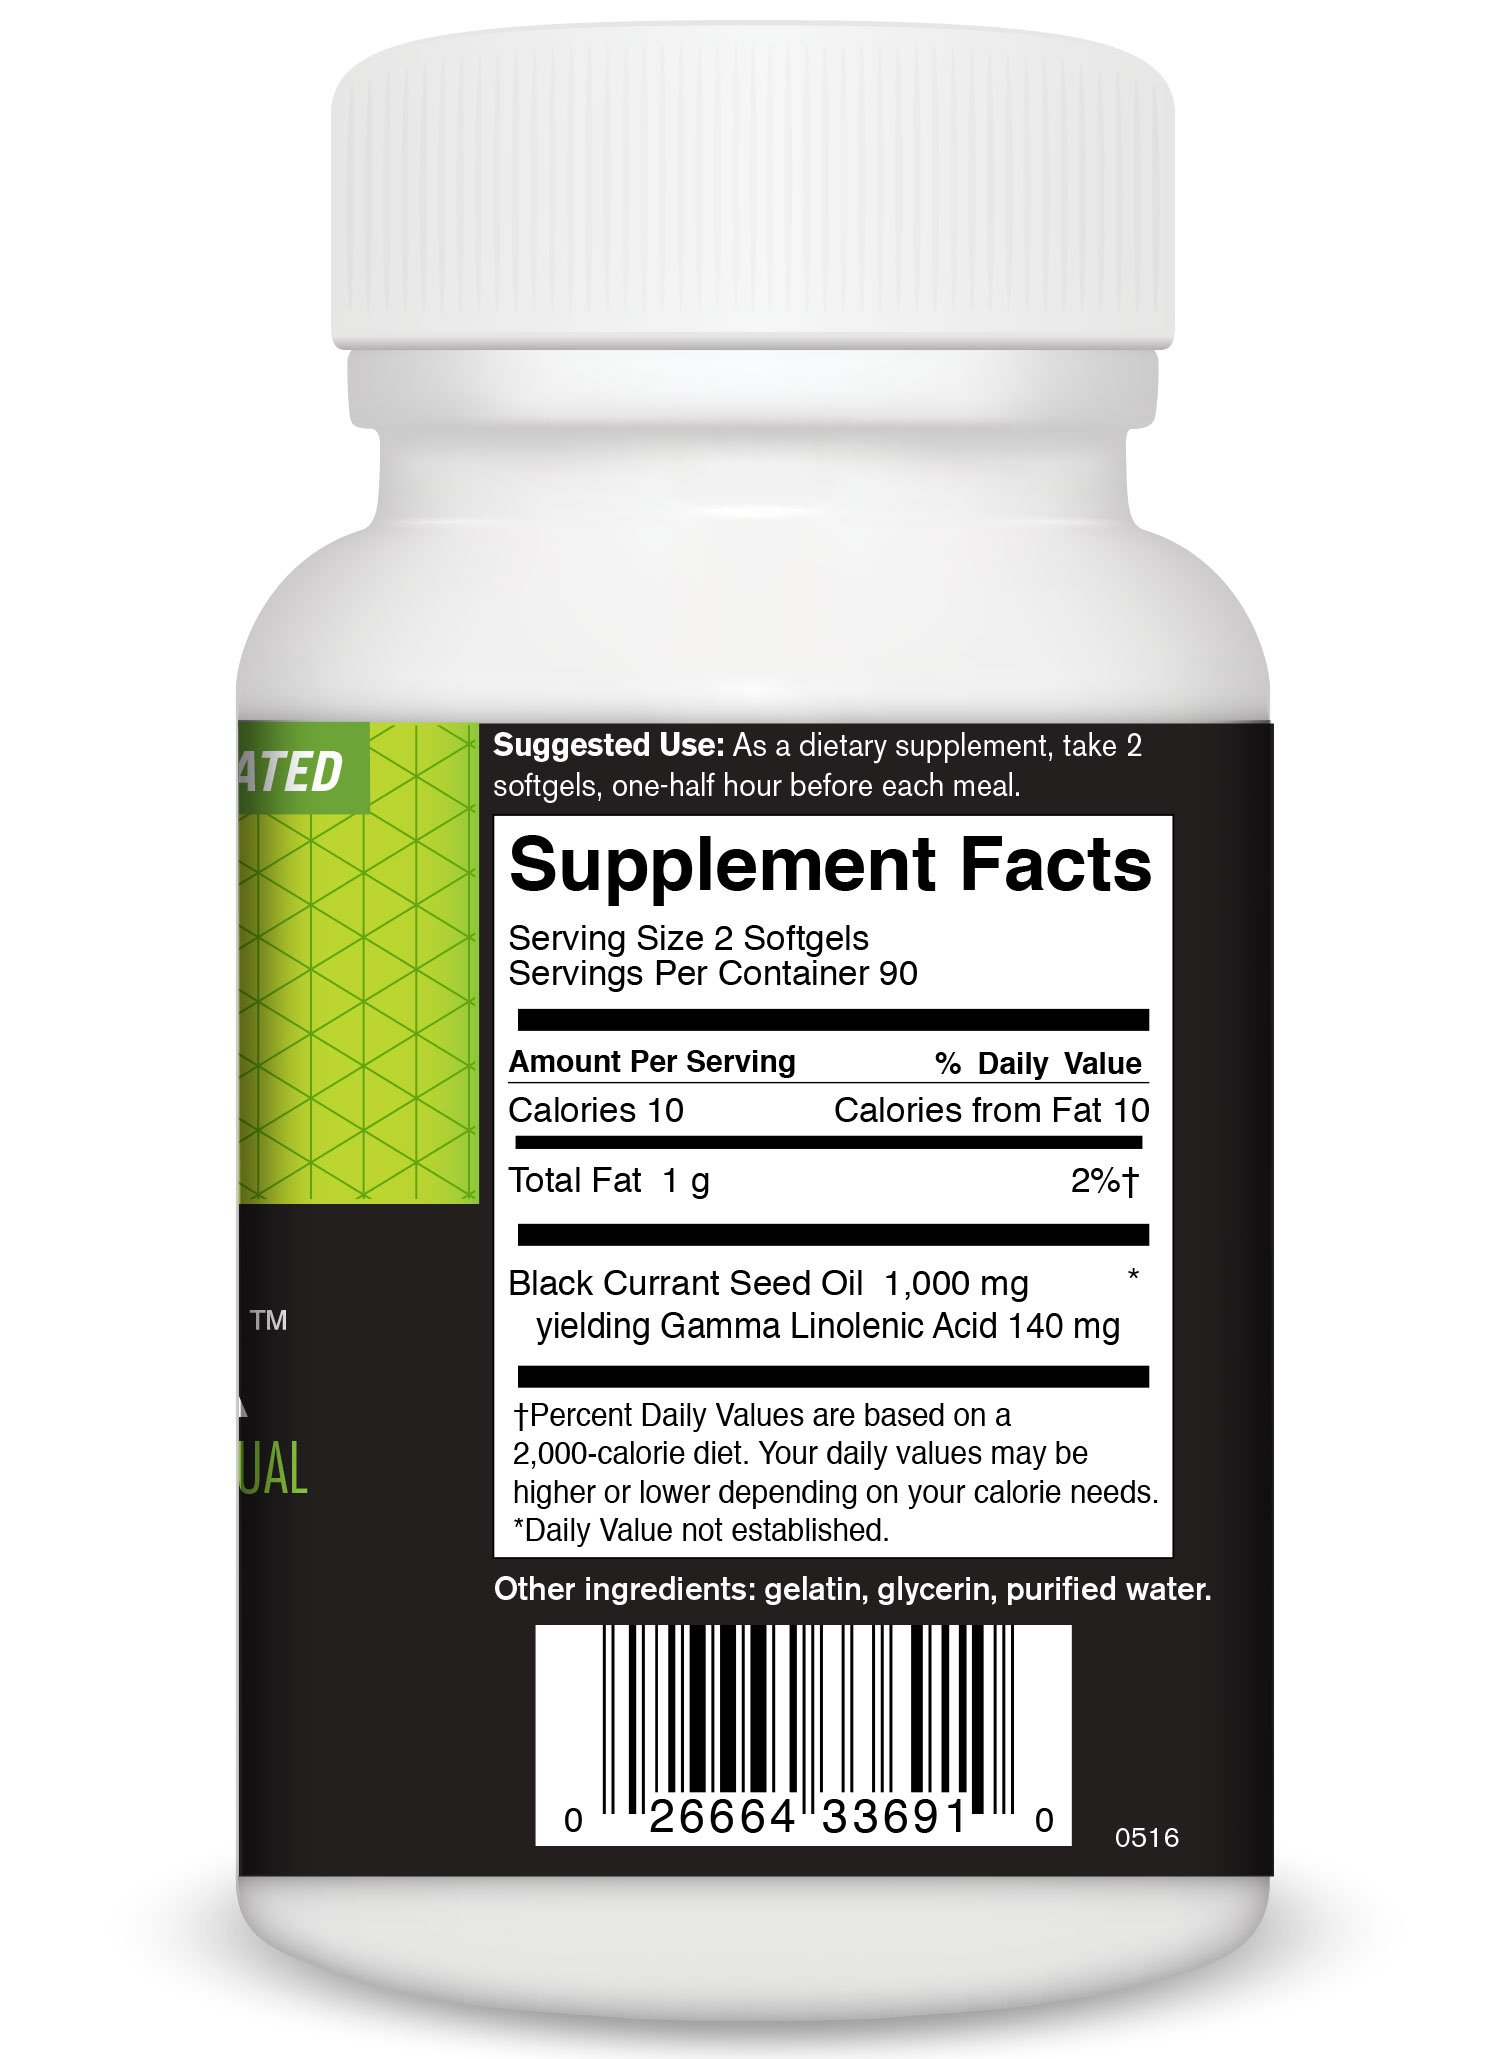 FoodScience of Vermont Natural GLA, Black Currant Seed Dietary Supplement, 180 Soft Gels by FoodScience of Vermont (Image #5)